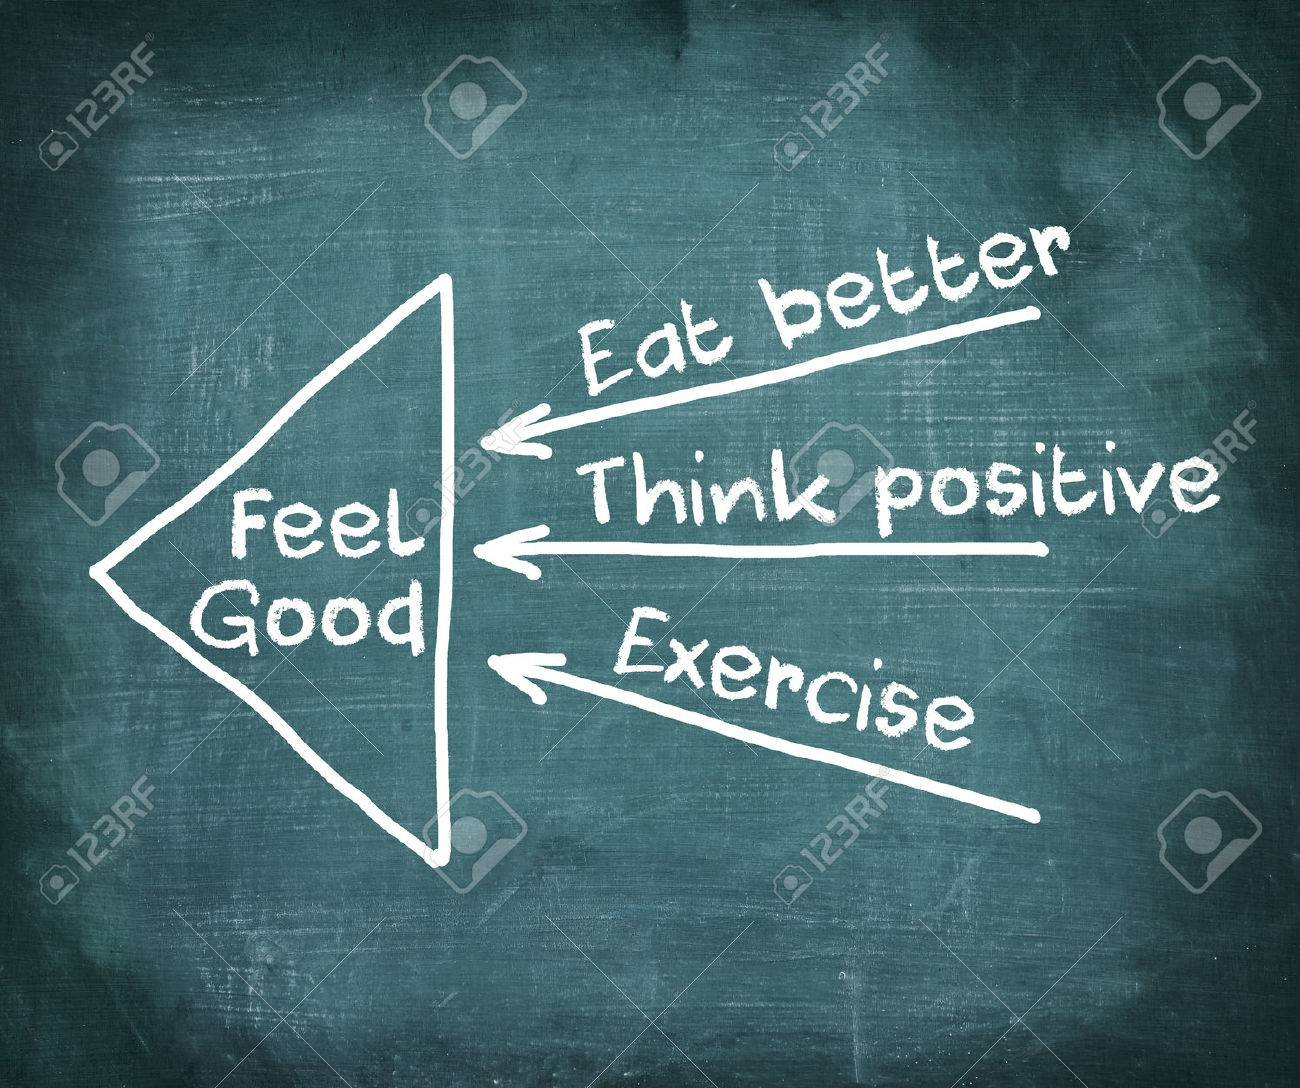 Positive thinking, Eexercise, Eat better - concept of Feeling Good, drawing with white chalk on blackboard Stock Photo - 31274901